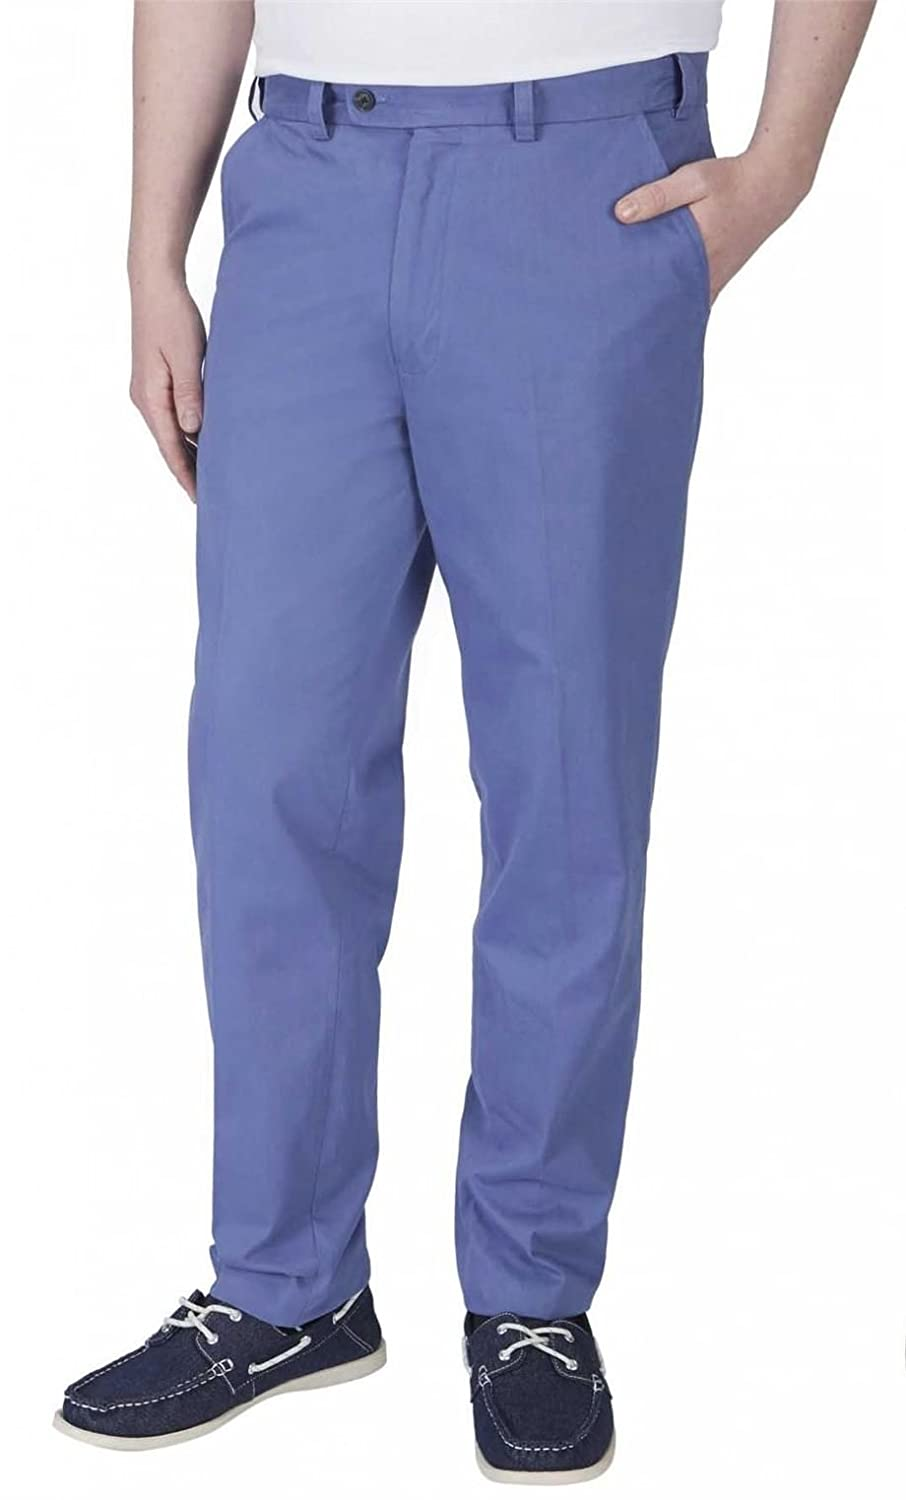 SKOPES STRETCH WAIST PURE COTTON CHINO TROUSERS IN BRIGHT BLUE IN WAIST 42 TO 54,L29/31/33